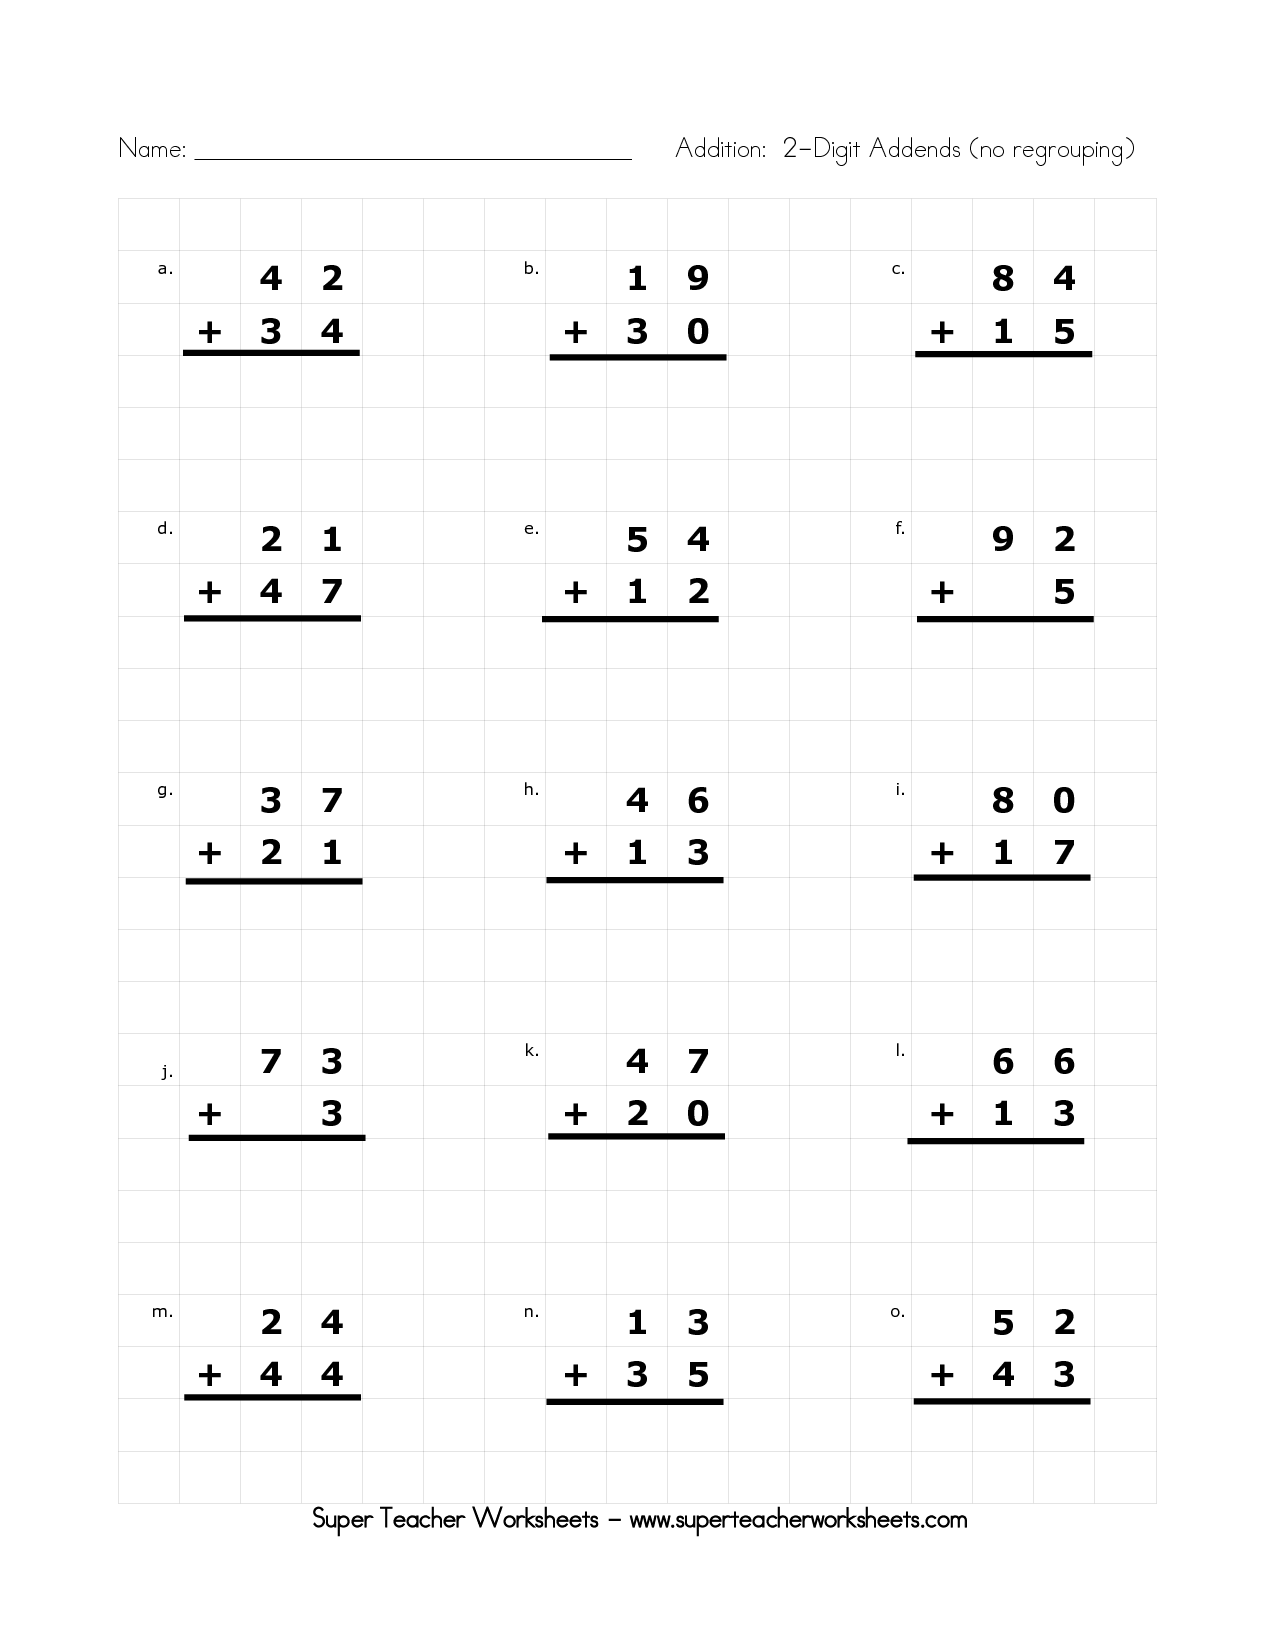 medium resolution of 2nd grade easy addition templates   Name Addition 2-Digit Addends (no  regrouping)   Addition worksheets